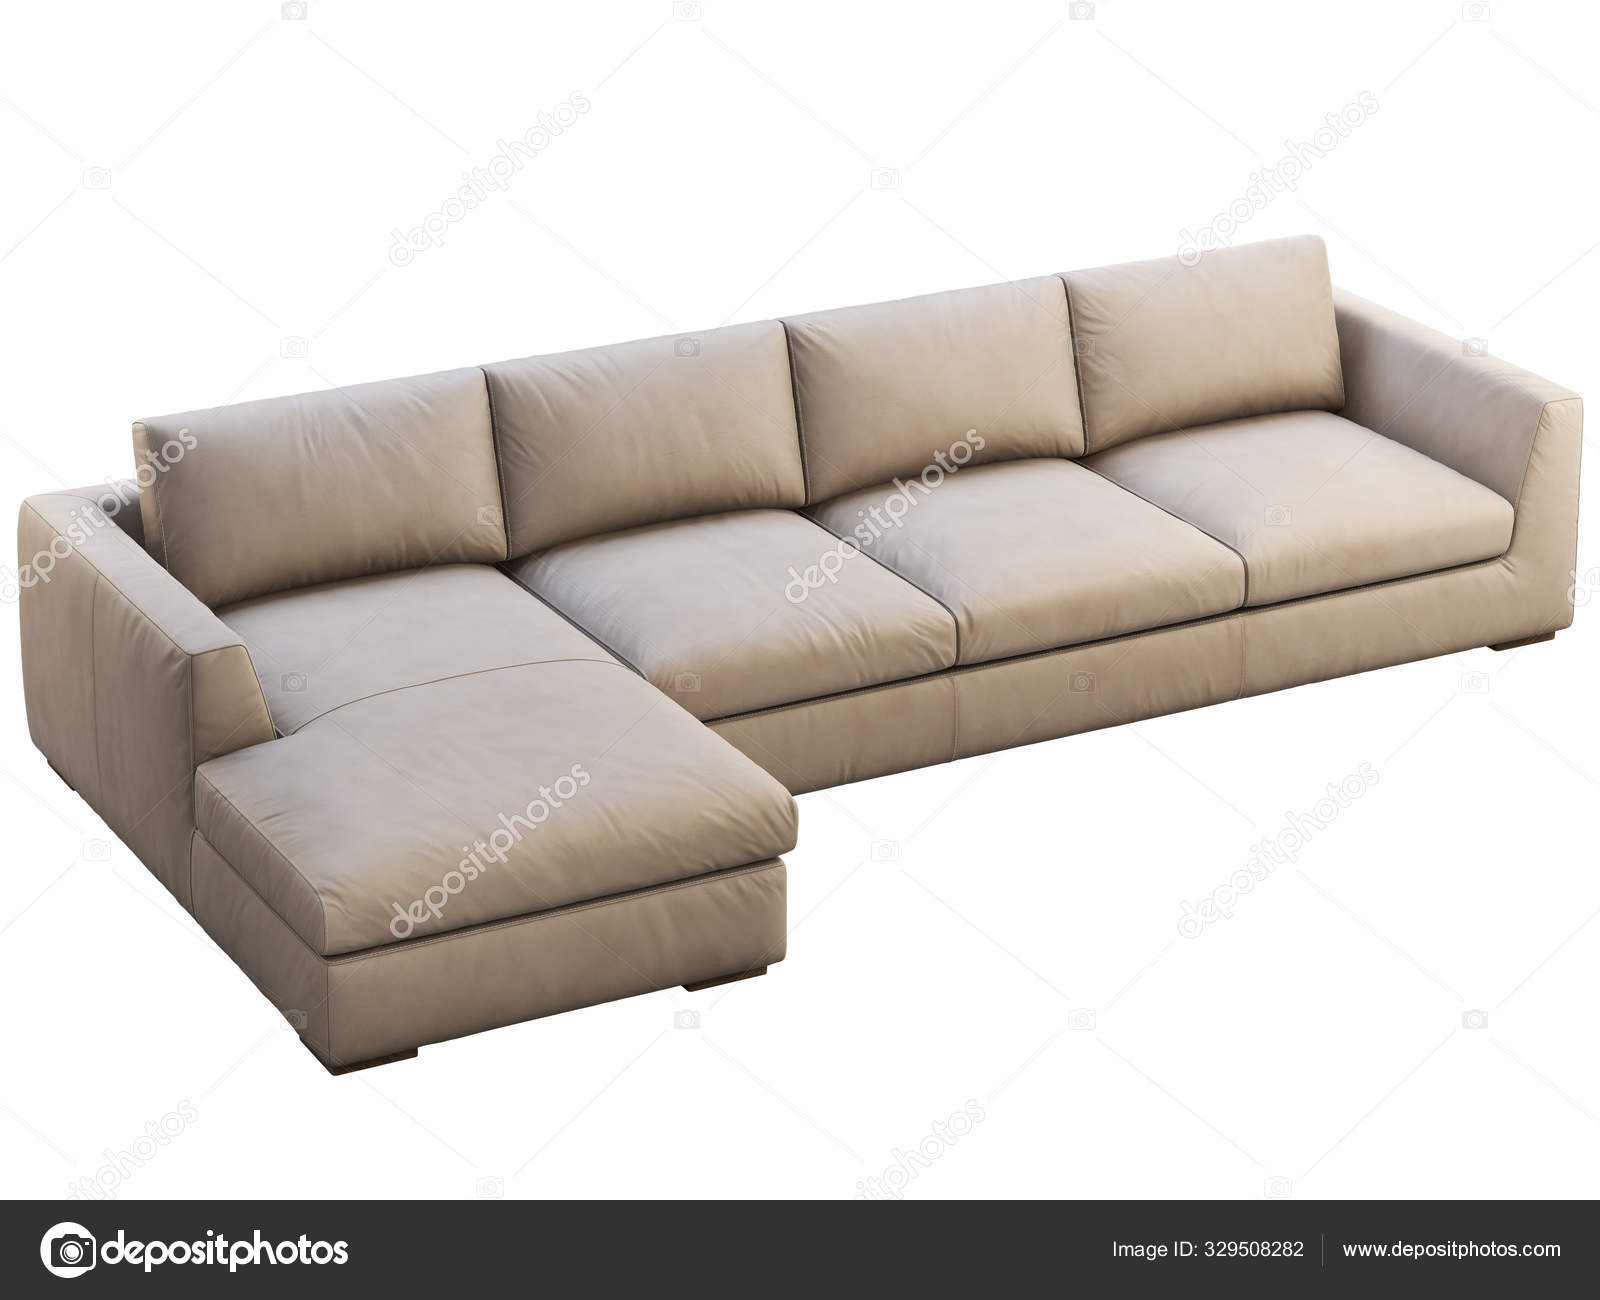 Chalet Modular Beige Leather Upholstery Sofa With Chaise Lounge 3d Render Stock Photo 3dmitruk 329508282